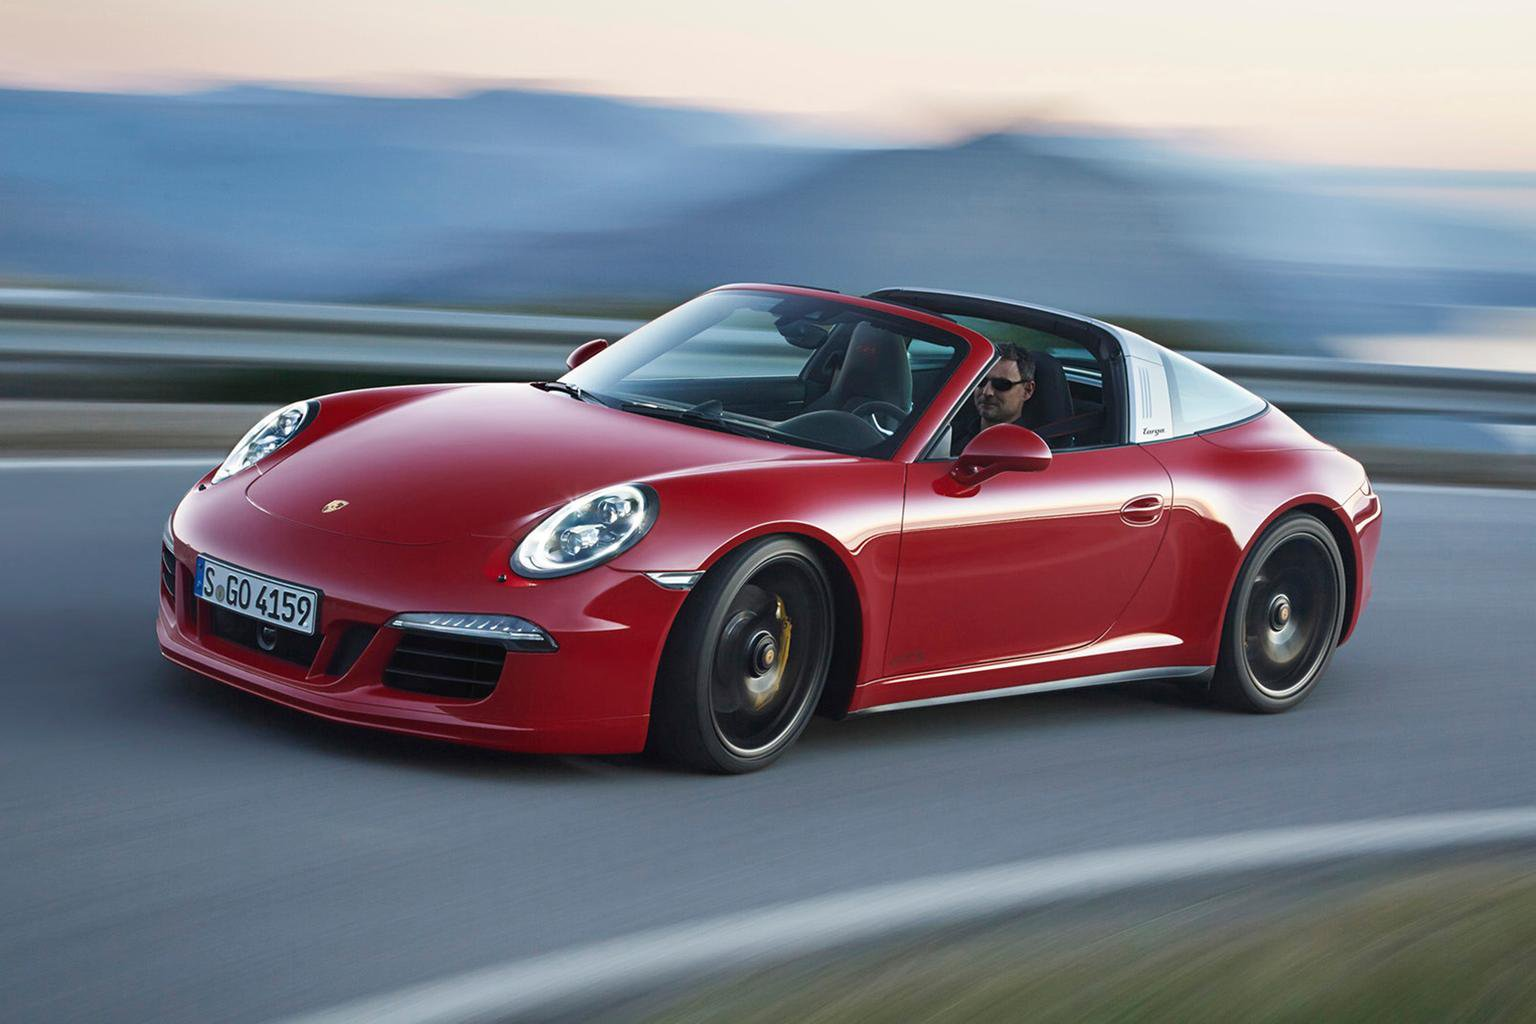 2015 Porsche 911 Targa GTS - first pictures and specs